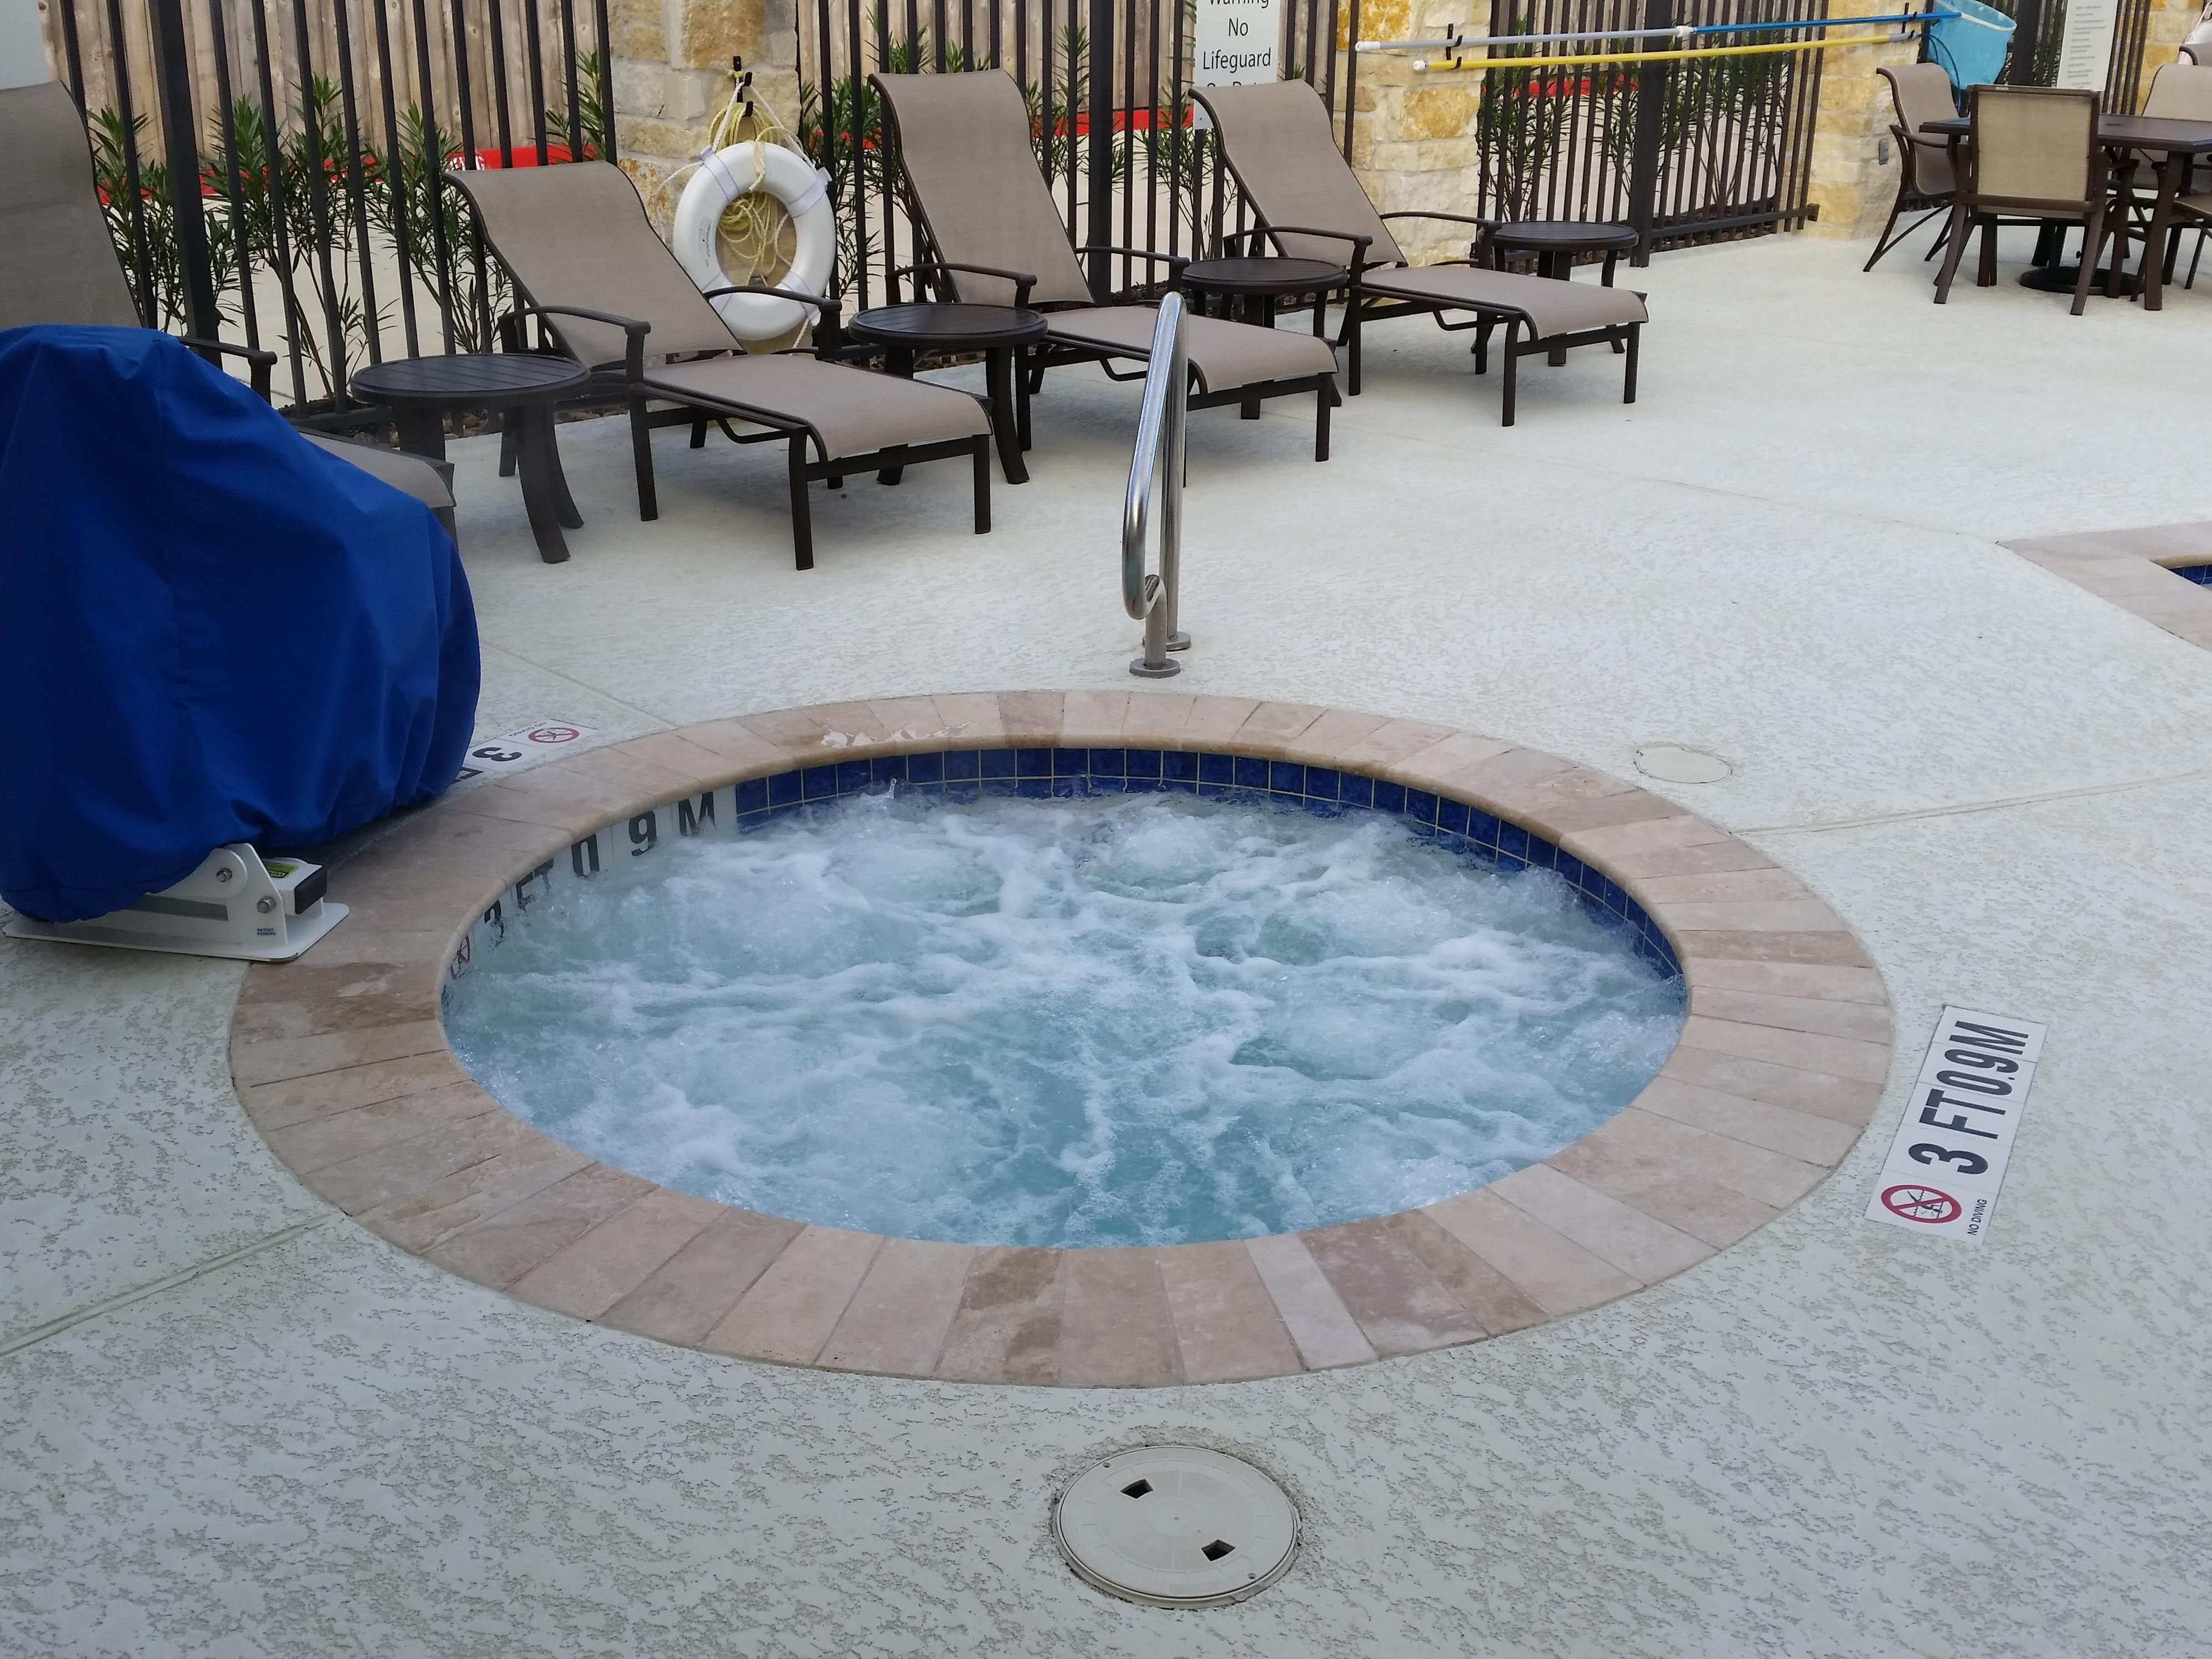 Soothe your tired muscles in our saltwater hot tub - open daily!